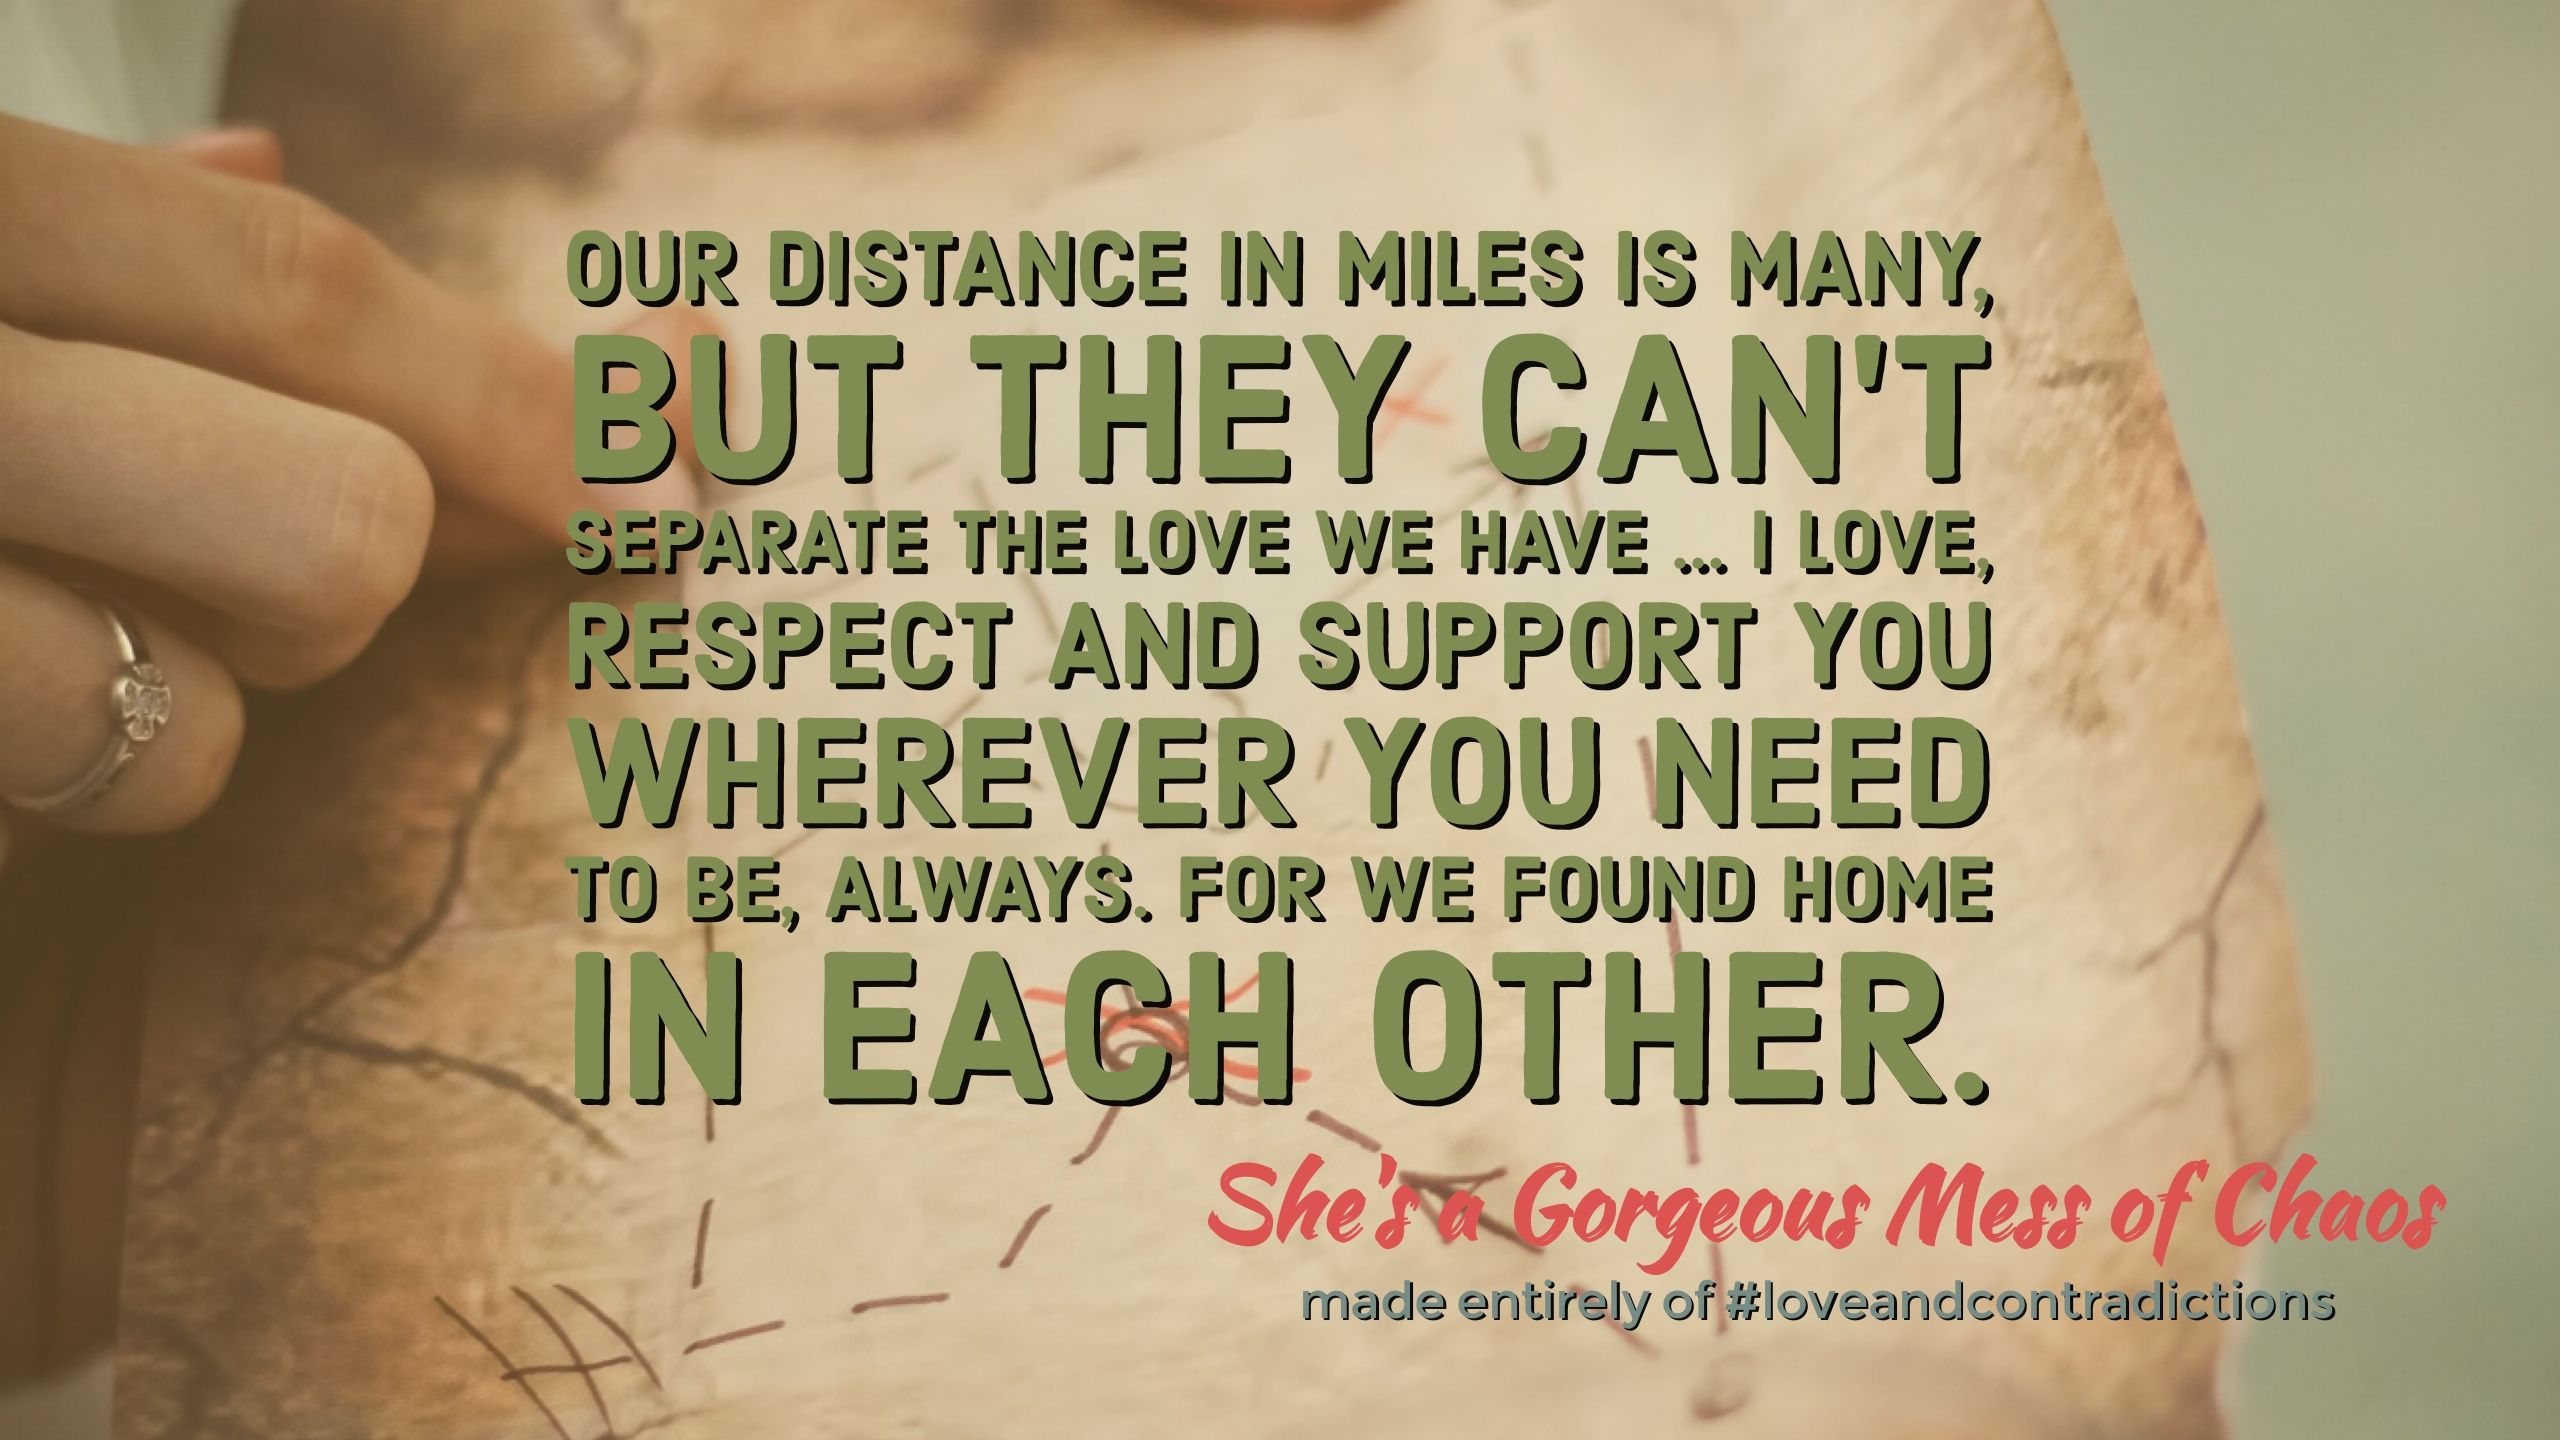 Our Distance In Miles Is Many But They Can T Separate The Love We Have I Love Respect And Support You Wherever You Need To Be Always For We Found Home I